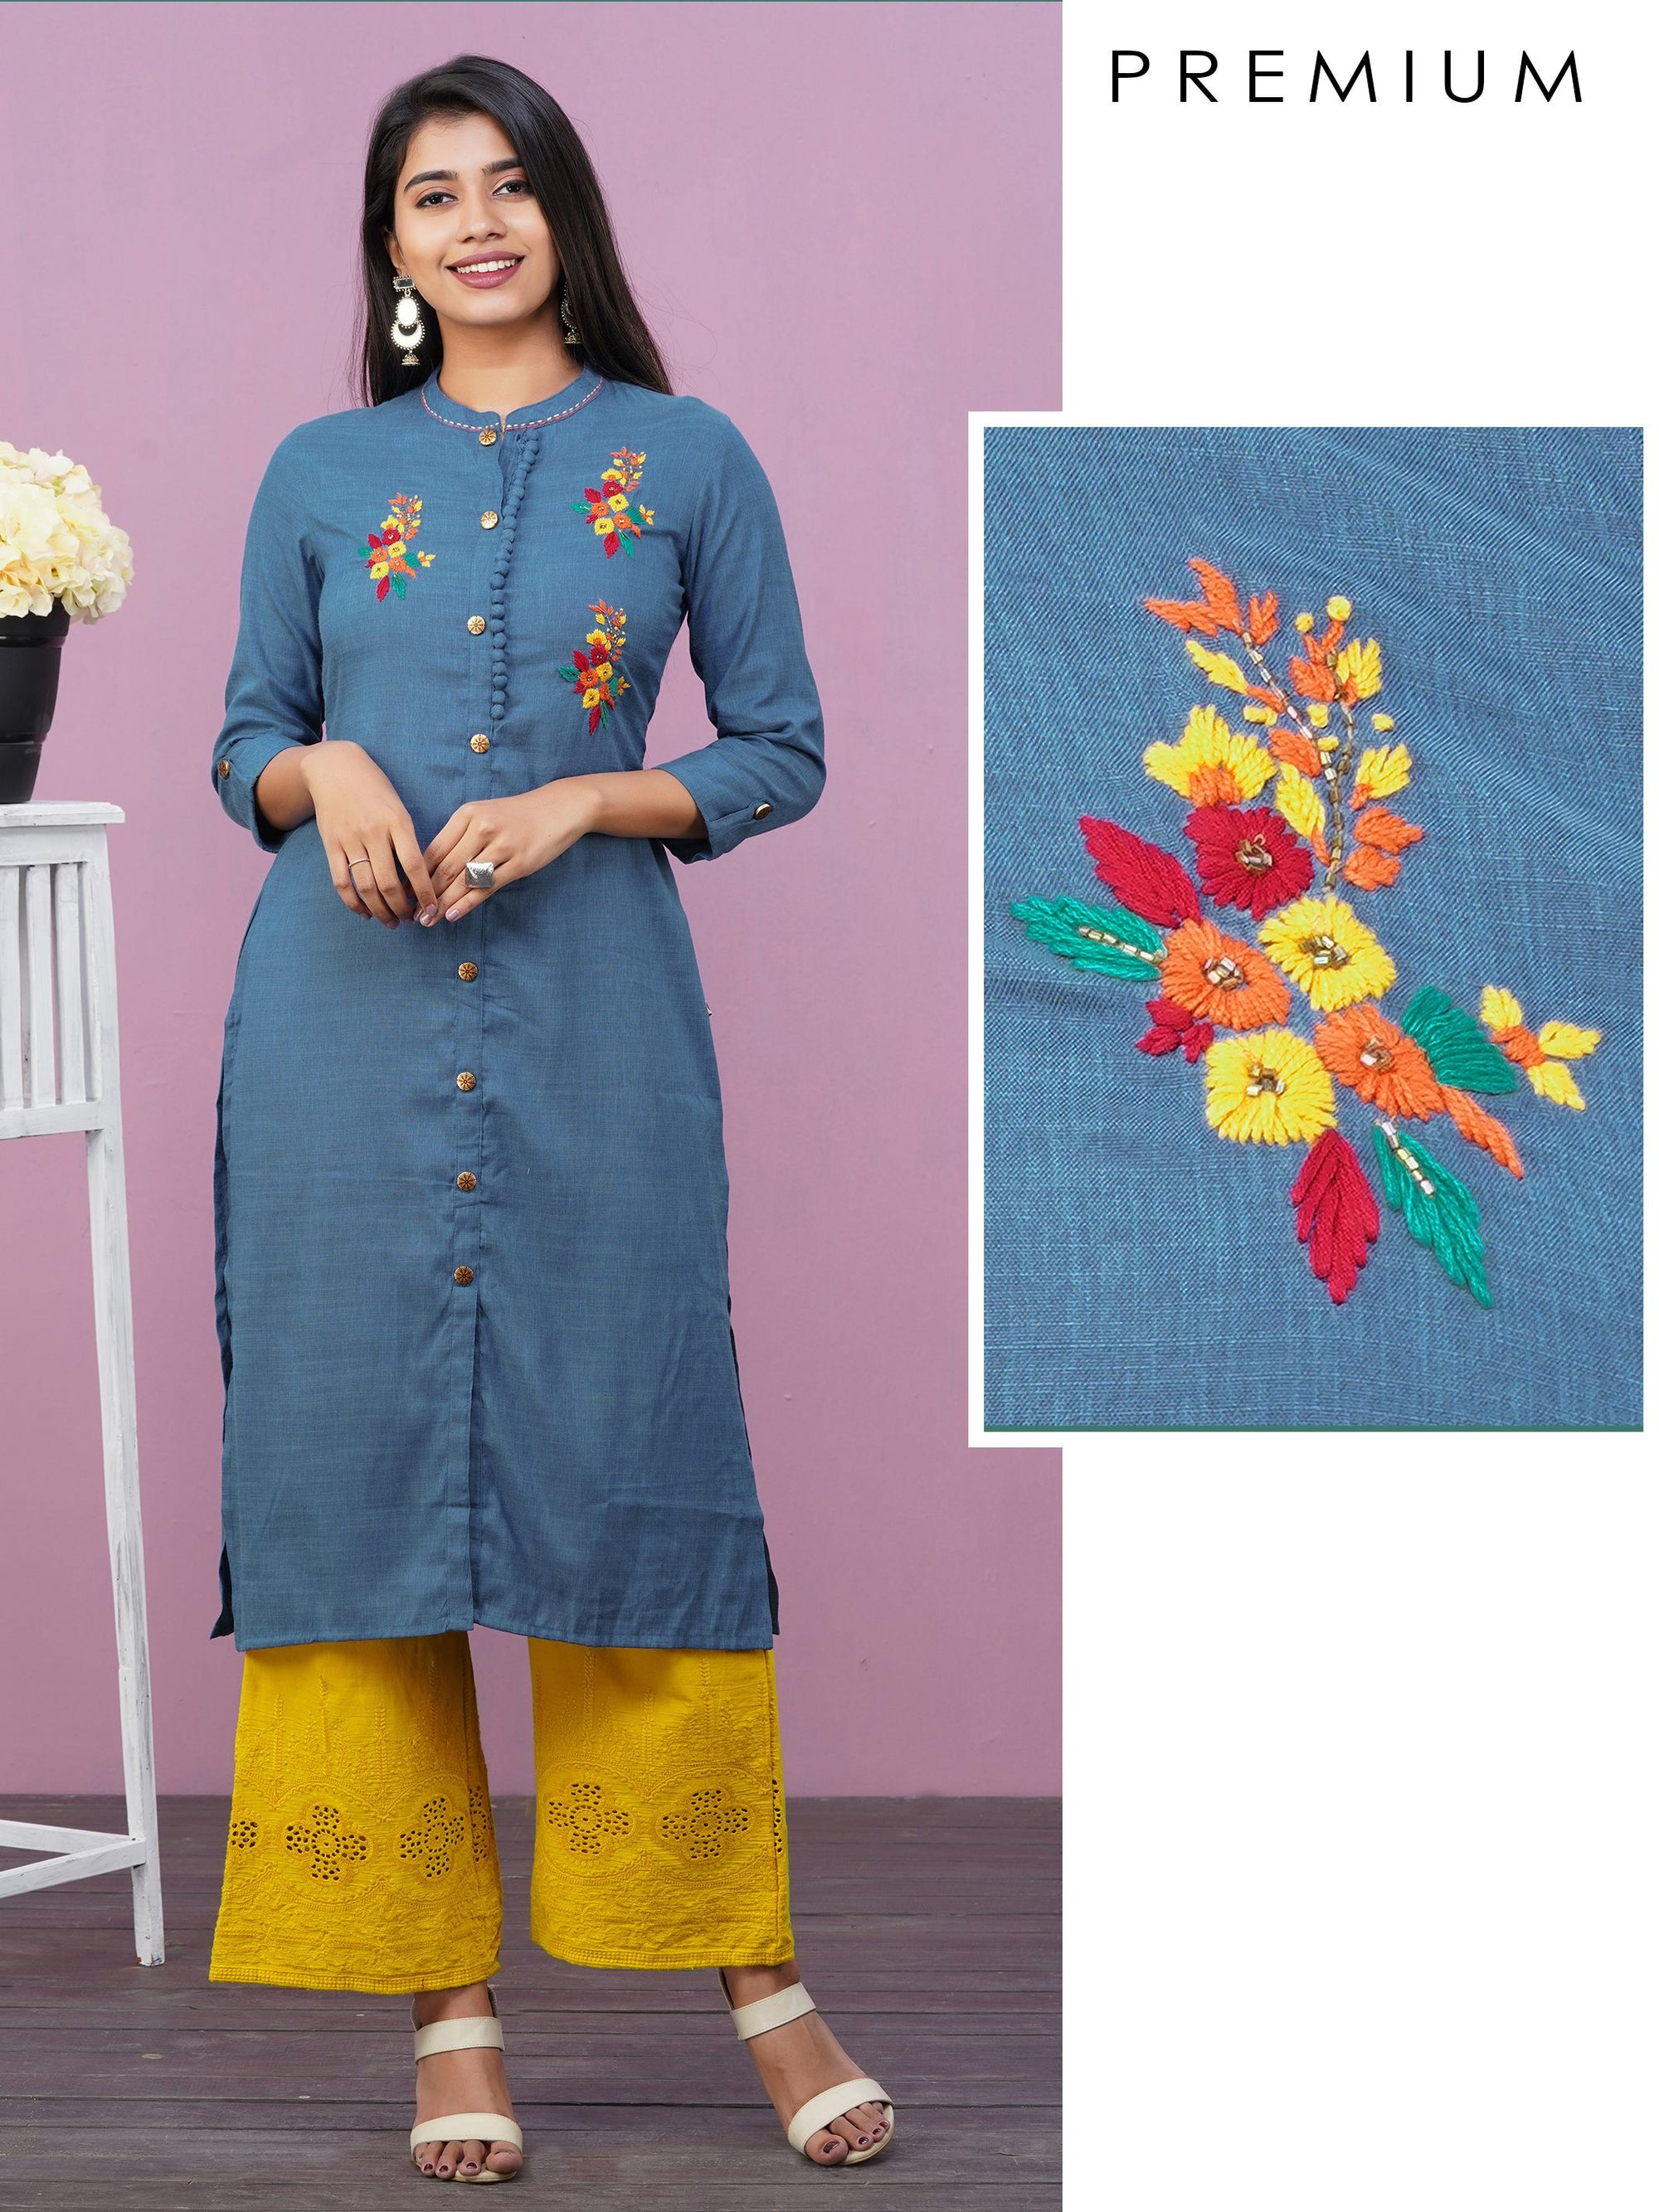 Floral Hand Embroidered Premium Cotton Kurti